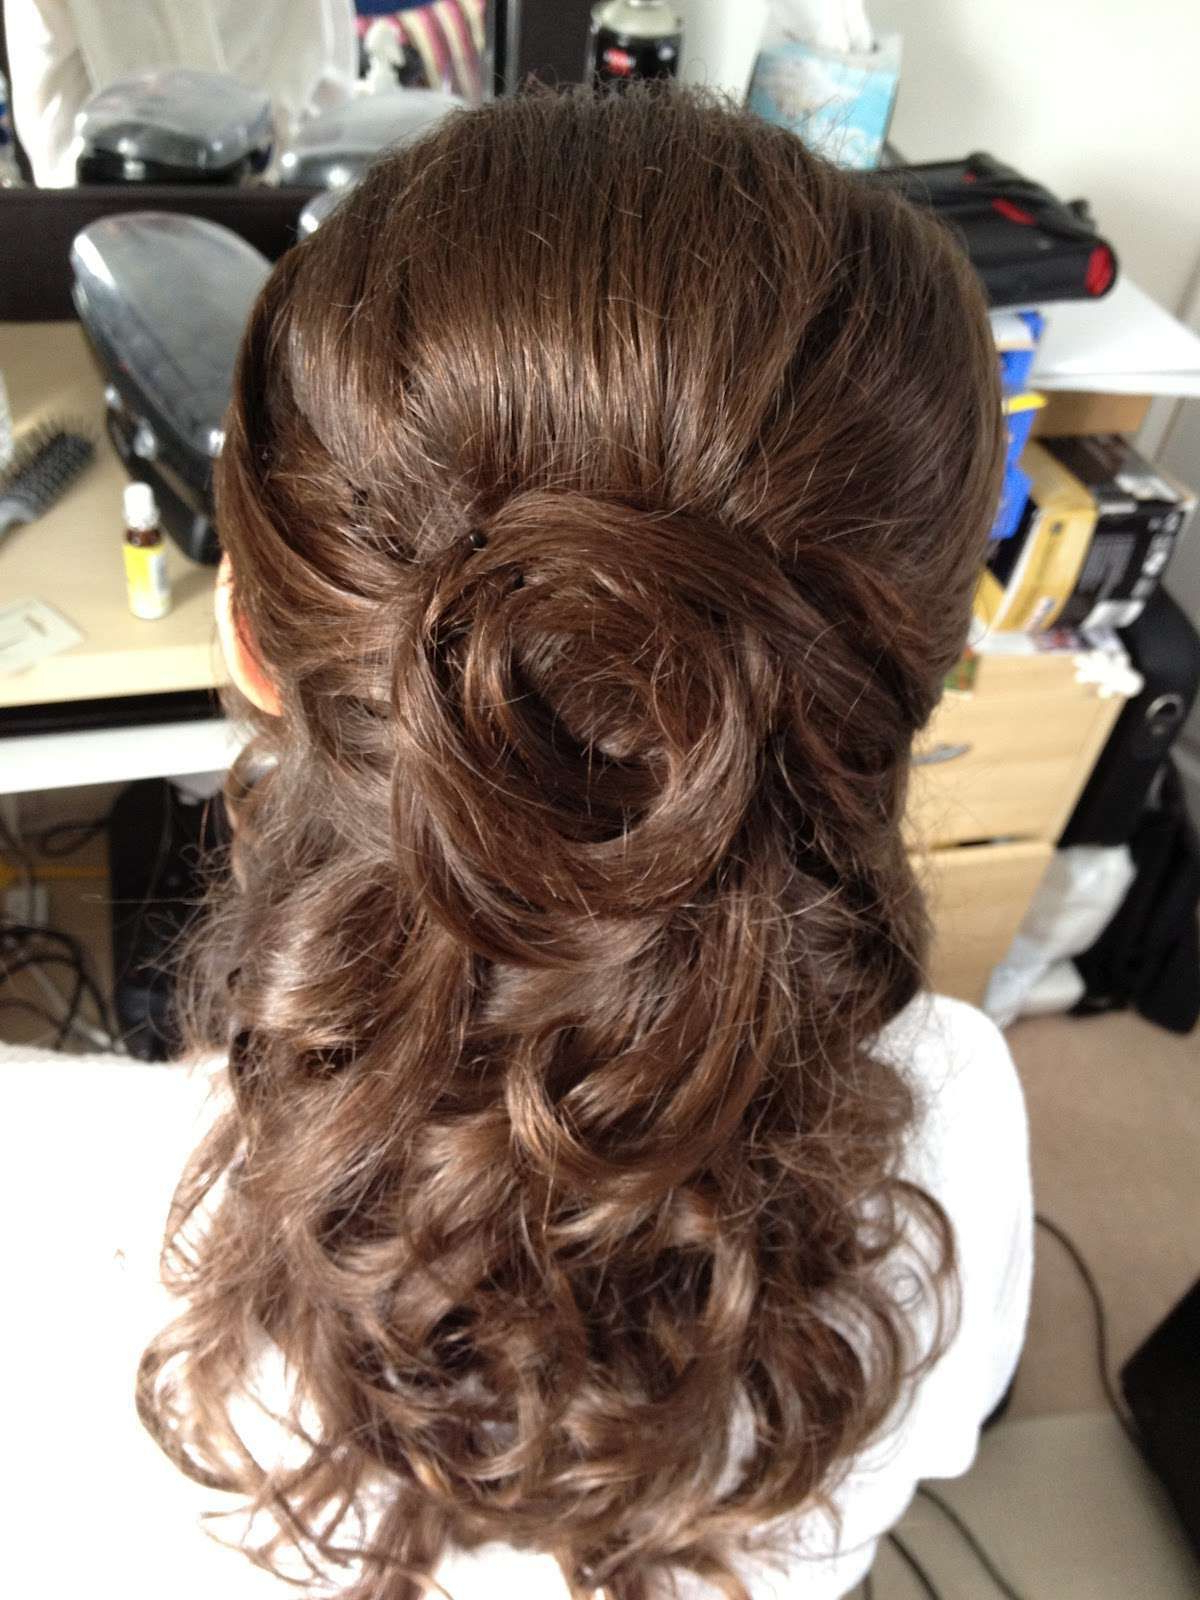 Most Recently Released Short Spiral Waves Hairstyles For Brides Pertaining To Latest Trends Of Curly & Wavy Hairstyles For Women (View 12 of 20)